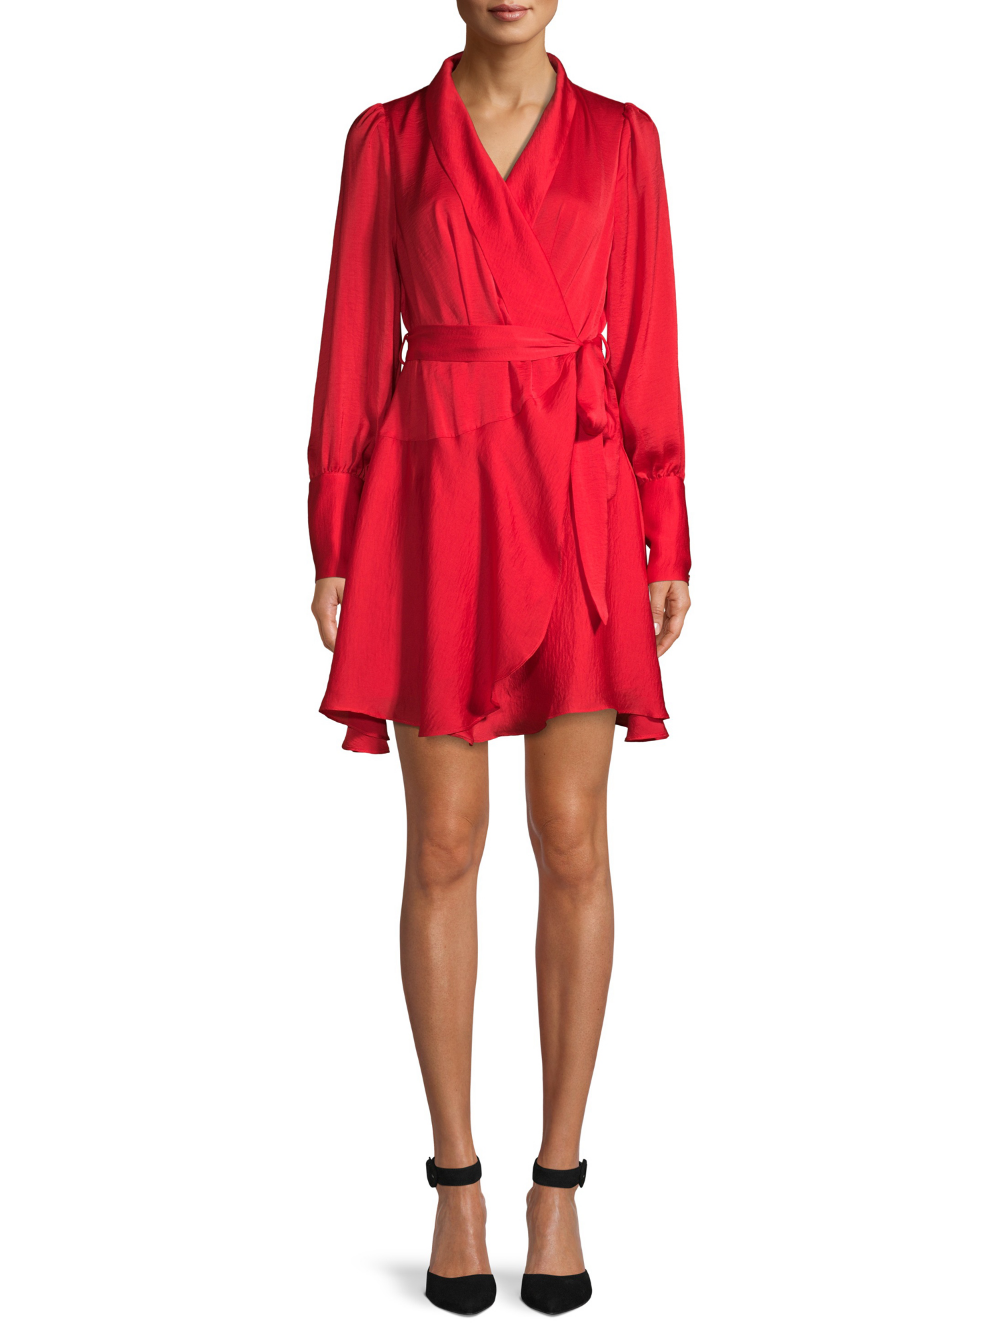 Free 2 Day Shipping On Qualified Orders Over 35 Buy Love Sadie Women S Long Sleeve Wrap Dress At Walmart Co Long Sleeve Wrap Dress Stylish Dresses Wrap Dress [ 1333 x 1000 Pixel ]